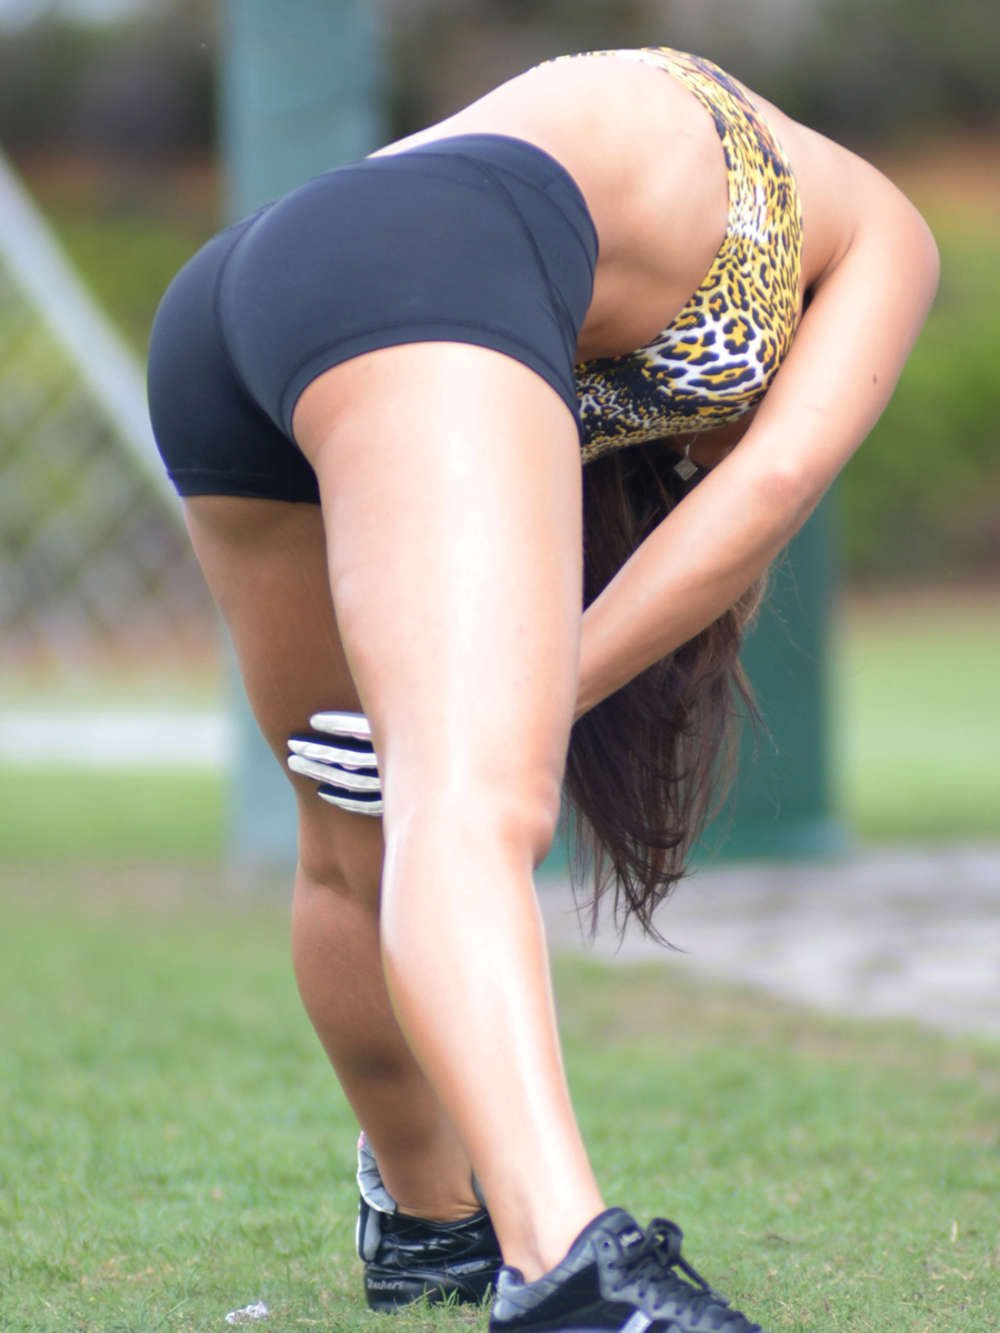 Andrea-Calle-Working-Out-Miami-Park-Kanoni-4